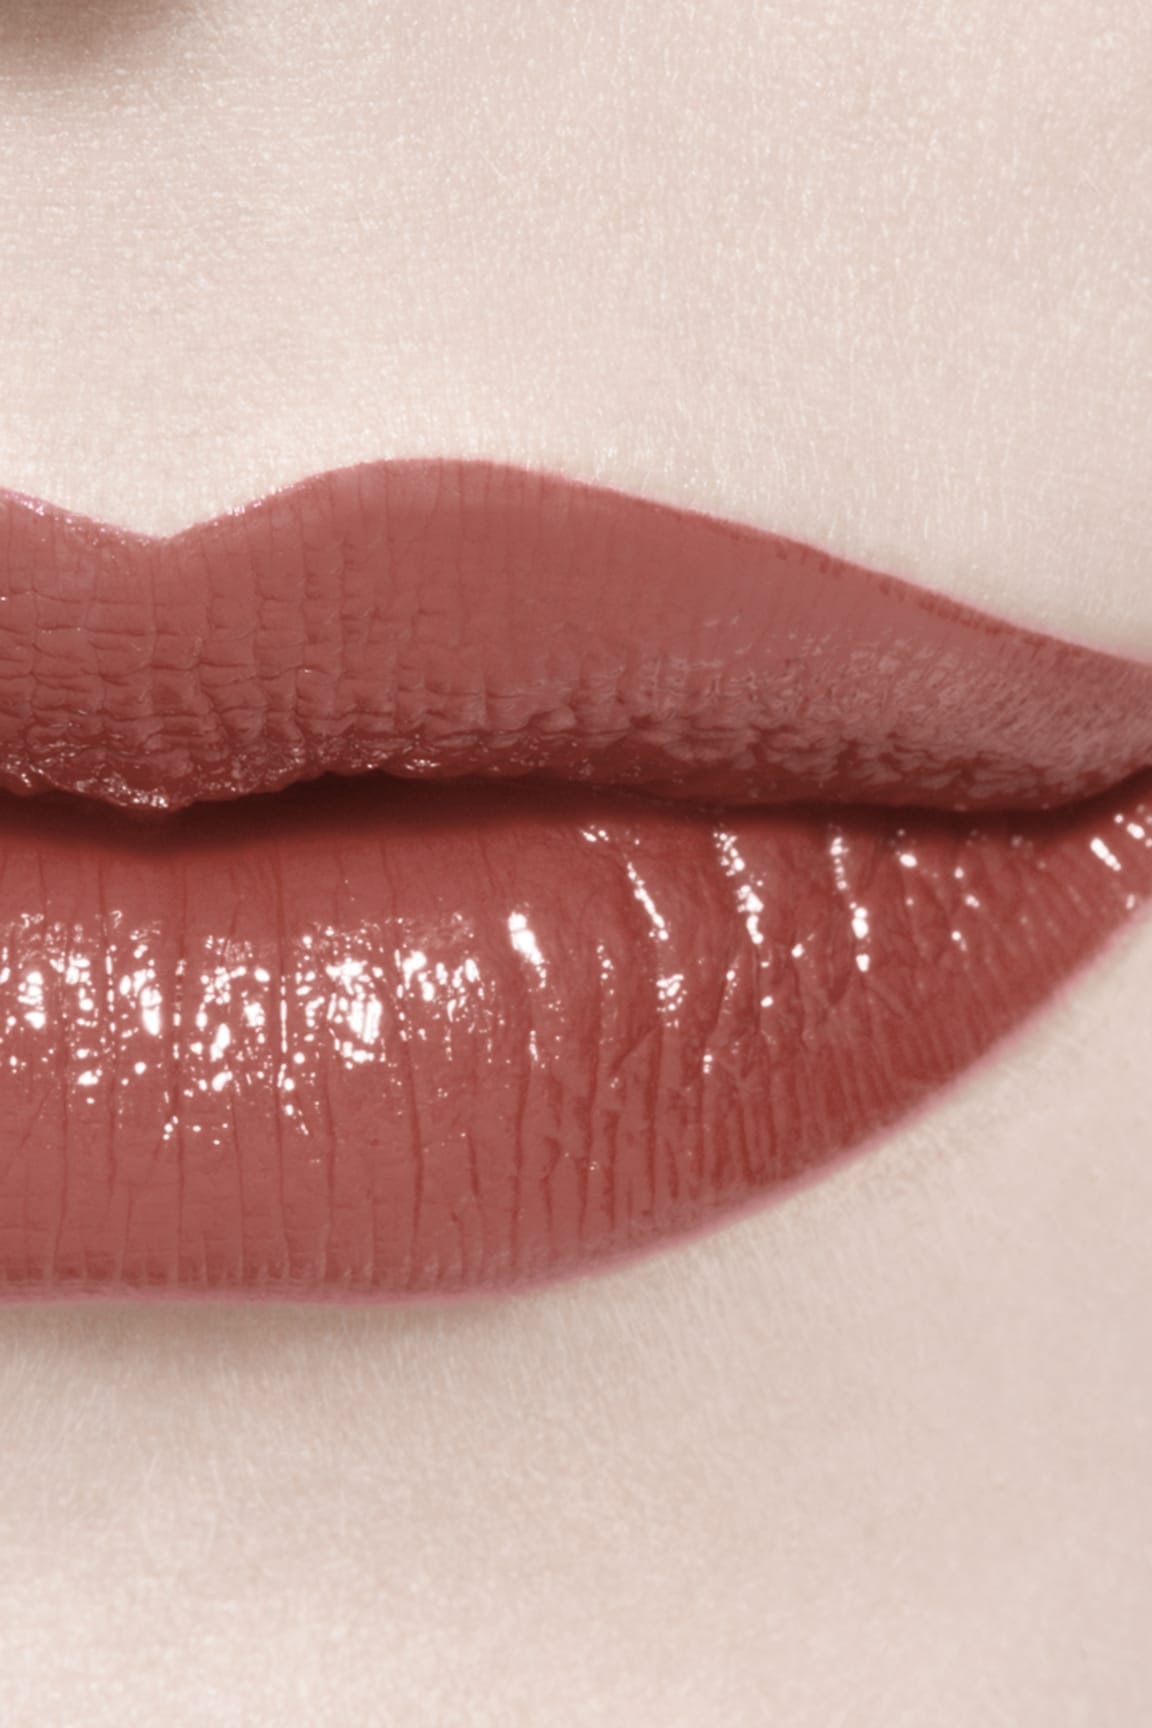 Application makeup visual 3 - ROUGE COCO BLOOM 112 - OPPORTUNITY